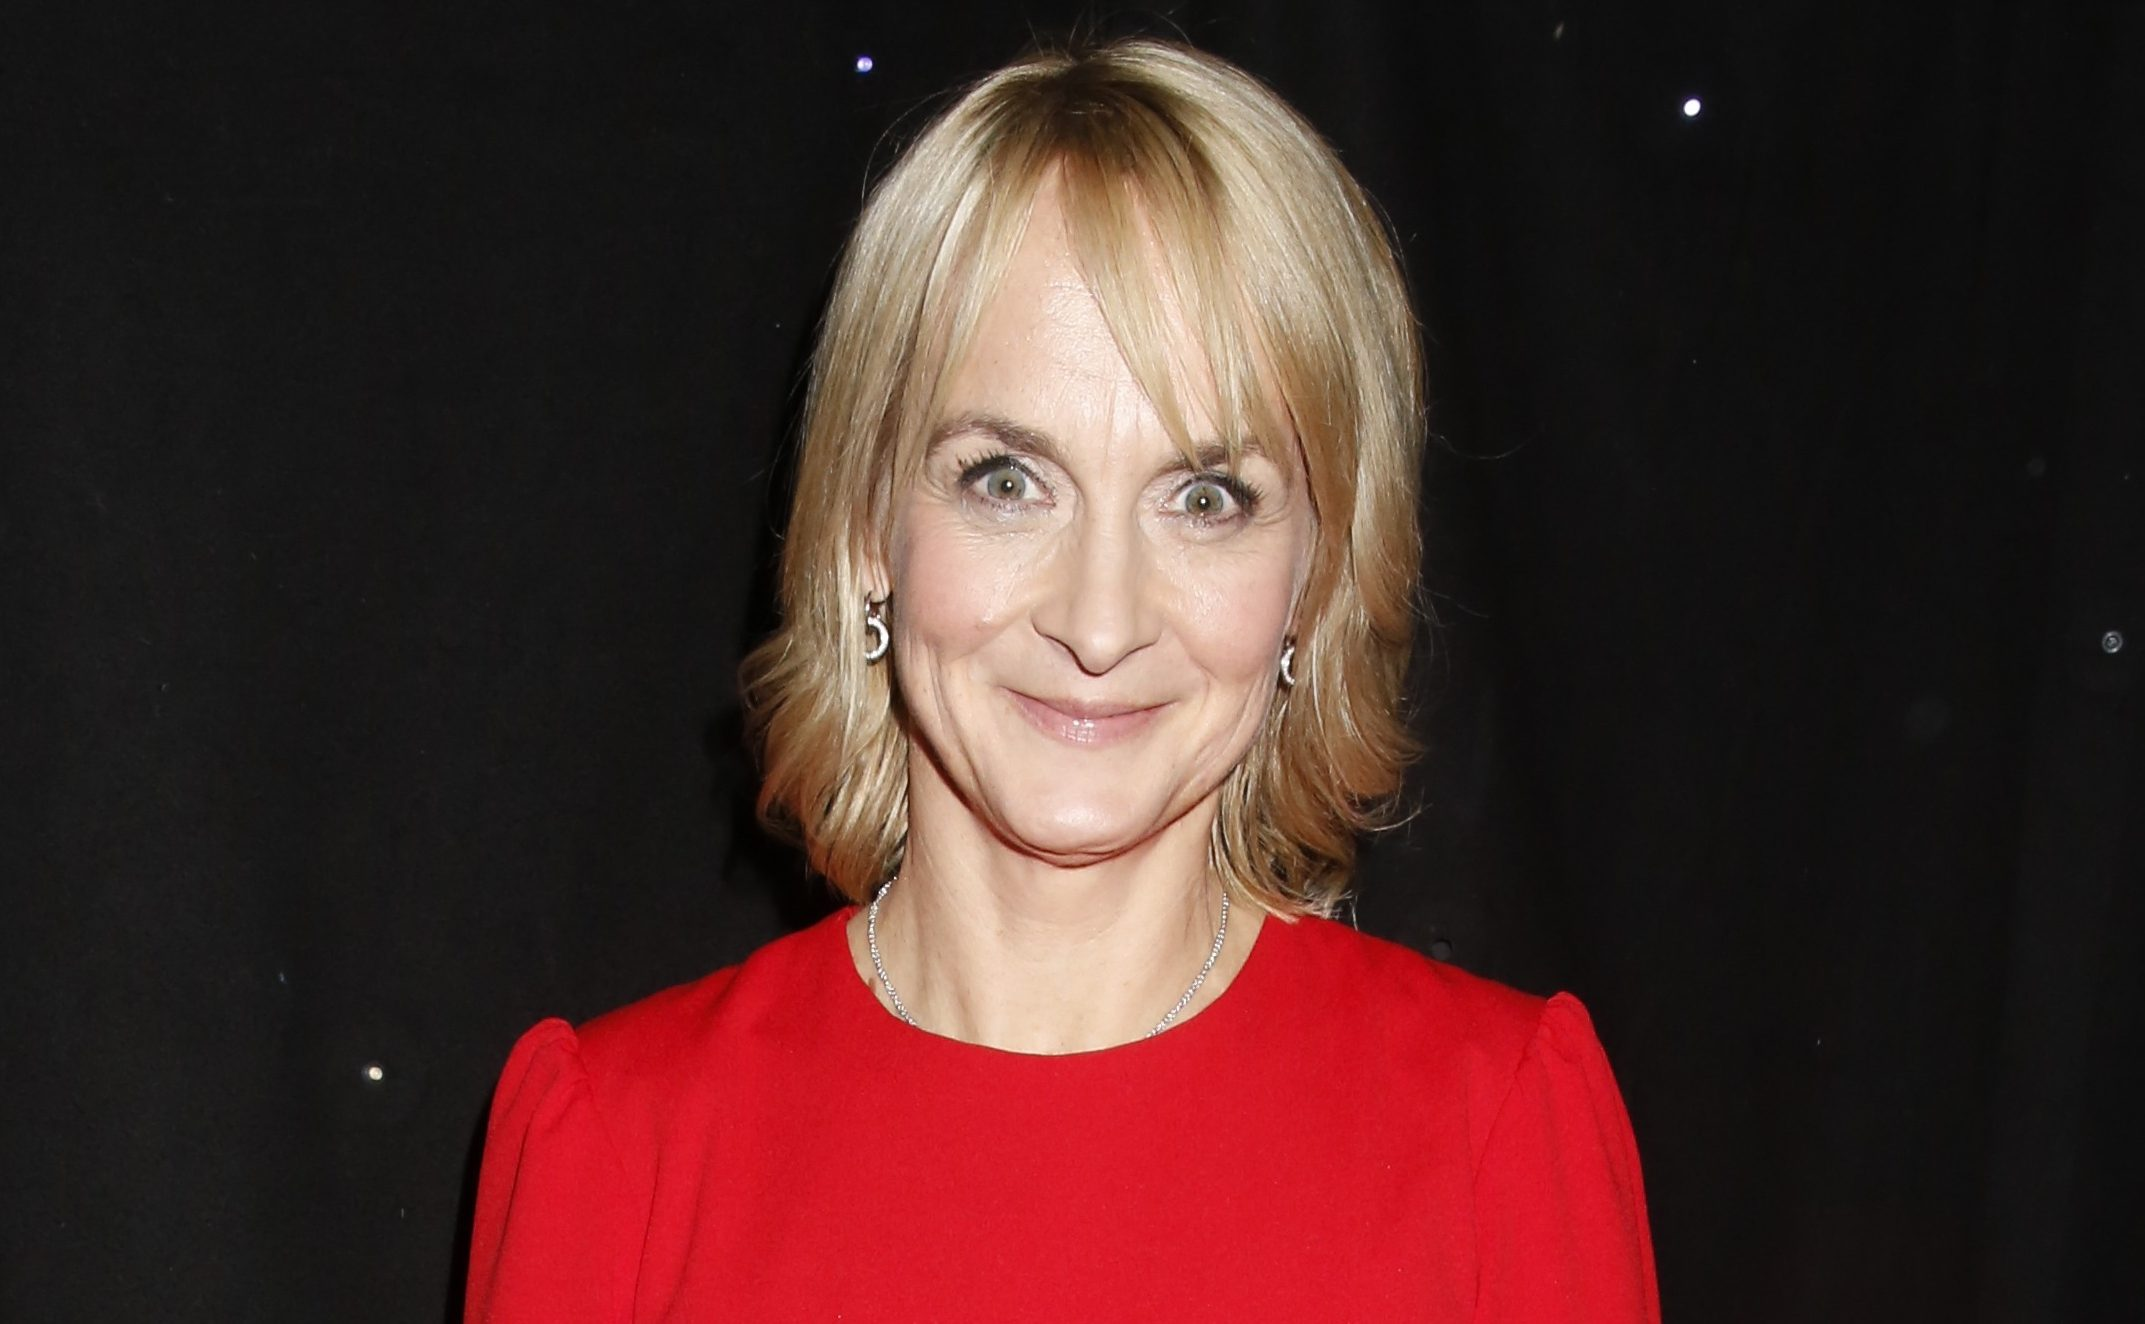 BBC Breakfast's Louise Minchin quits social media after abuse from internet trolls